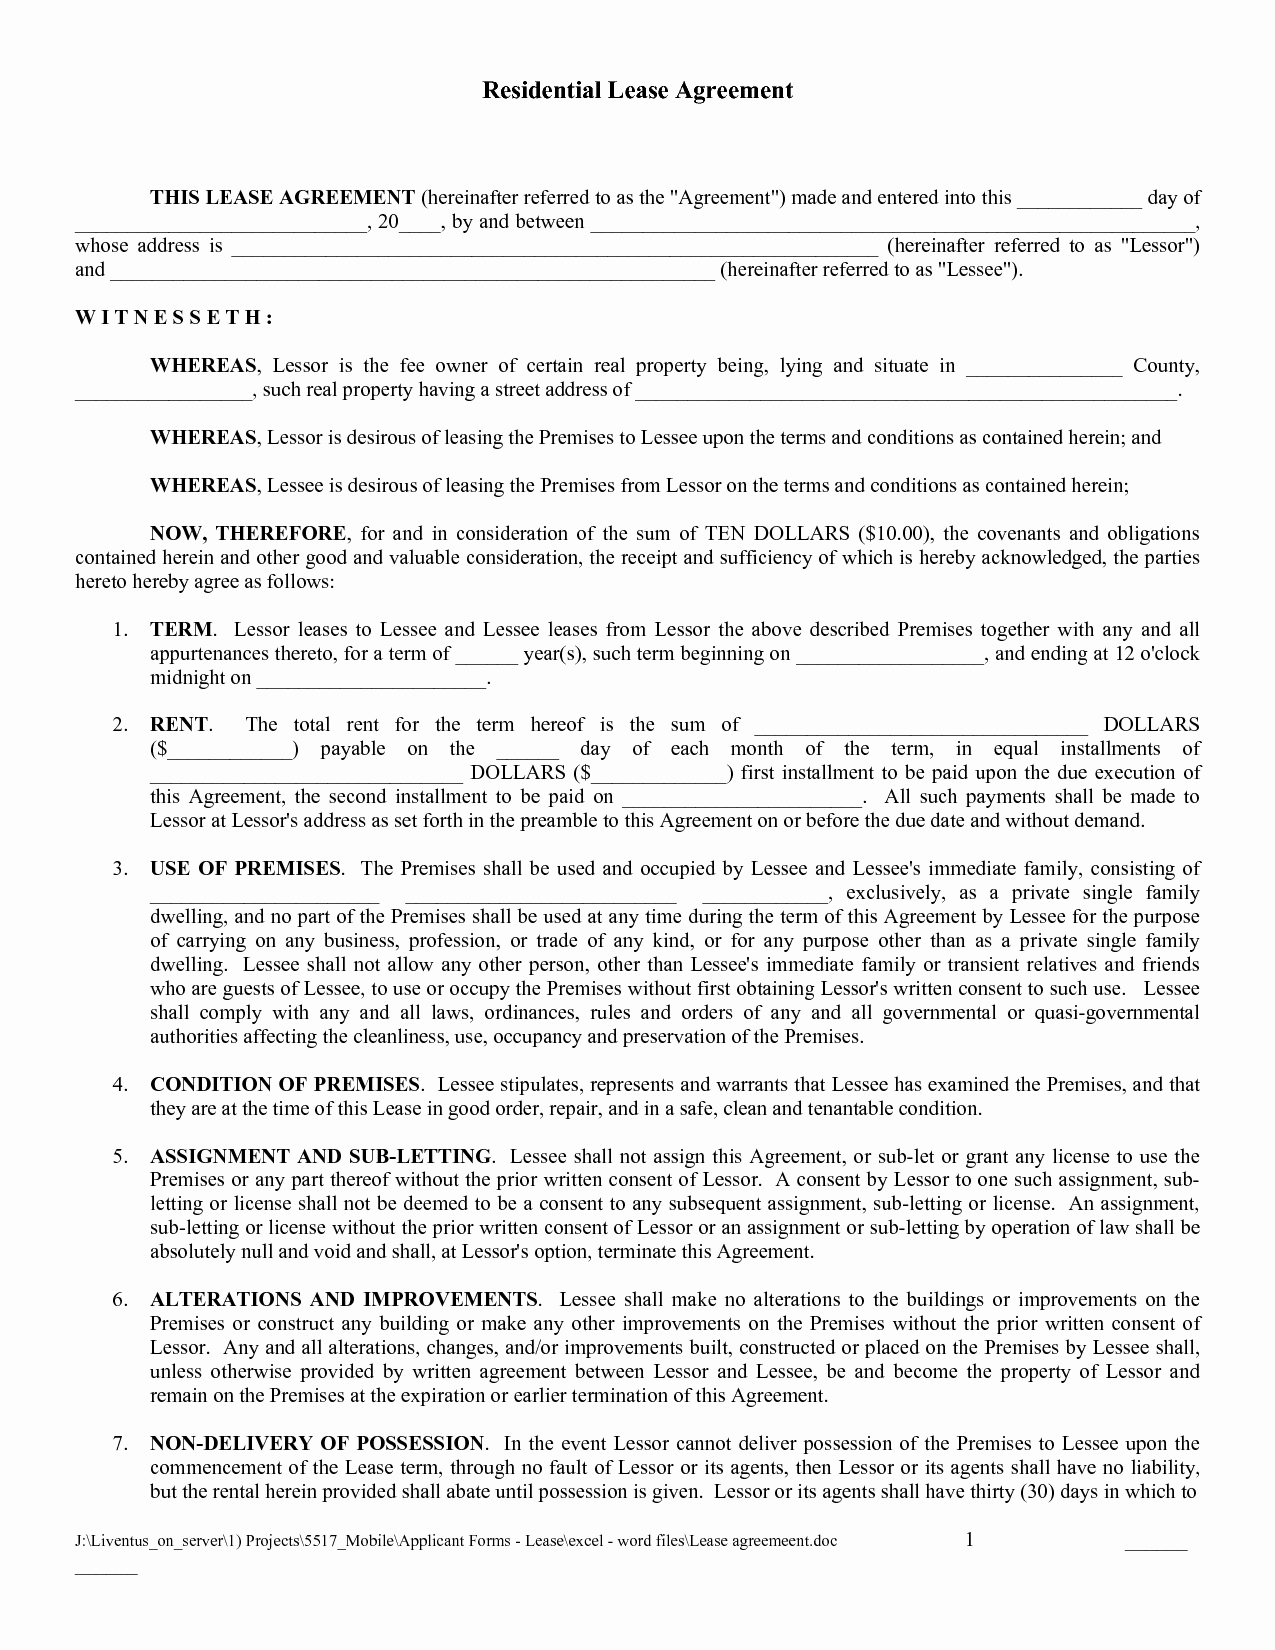 Land Lease Agreement Template Free Awesome Free Copy Rental Lease Agreement